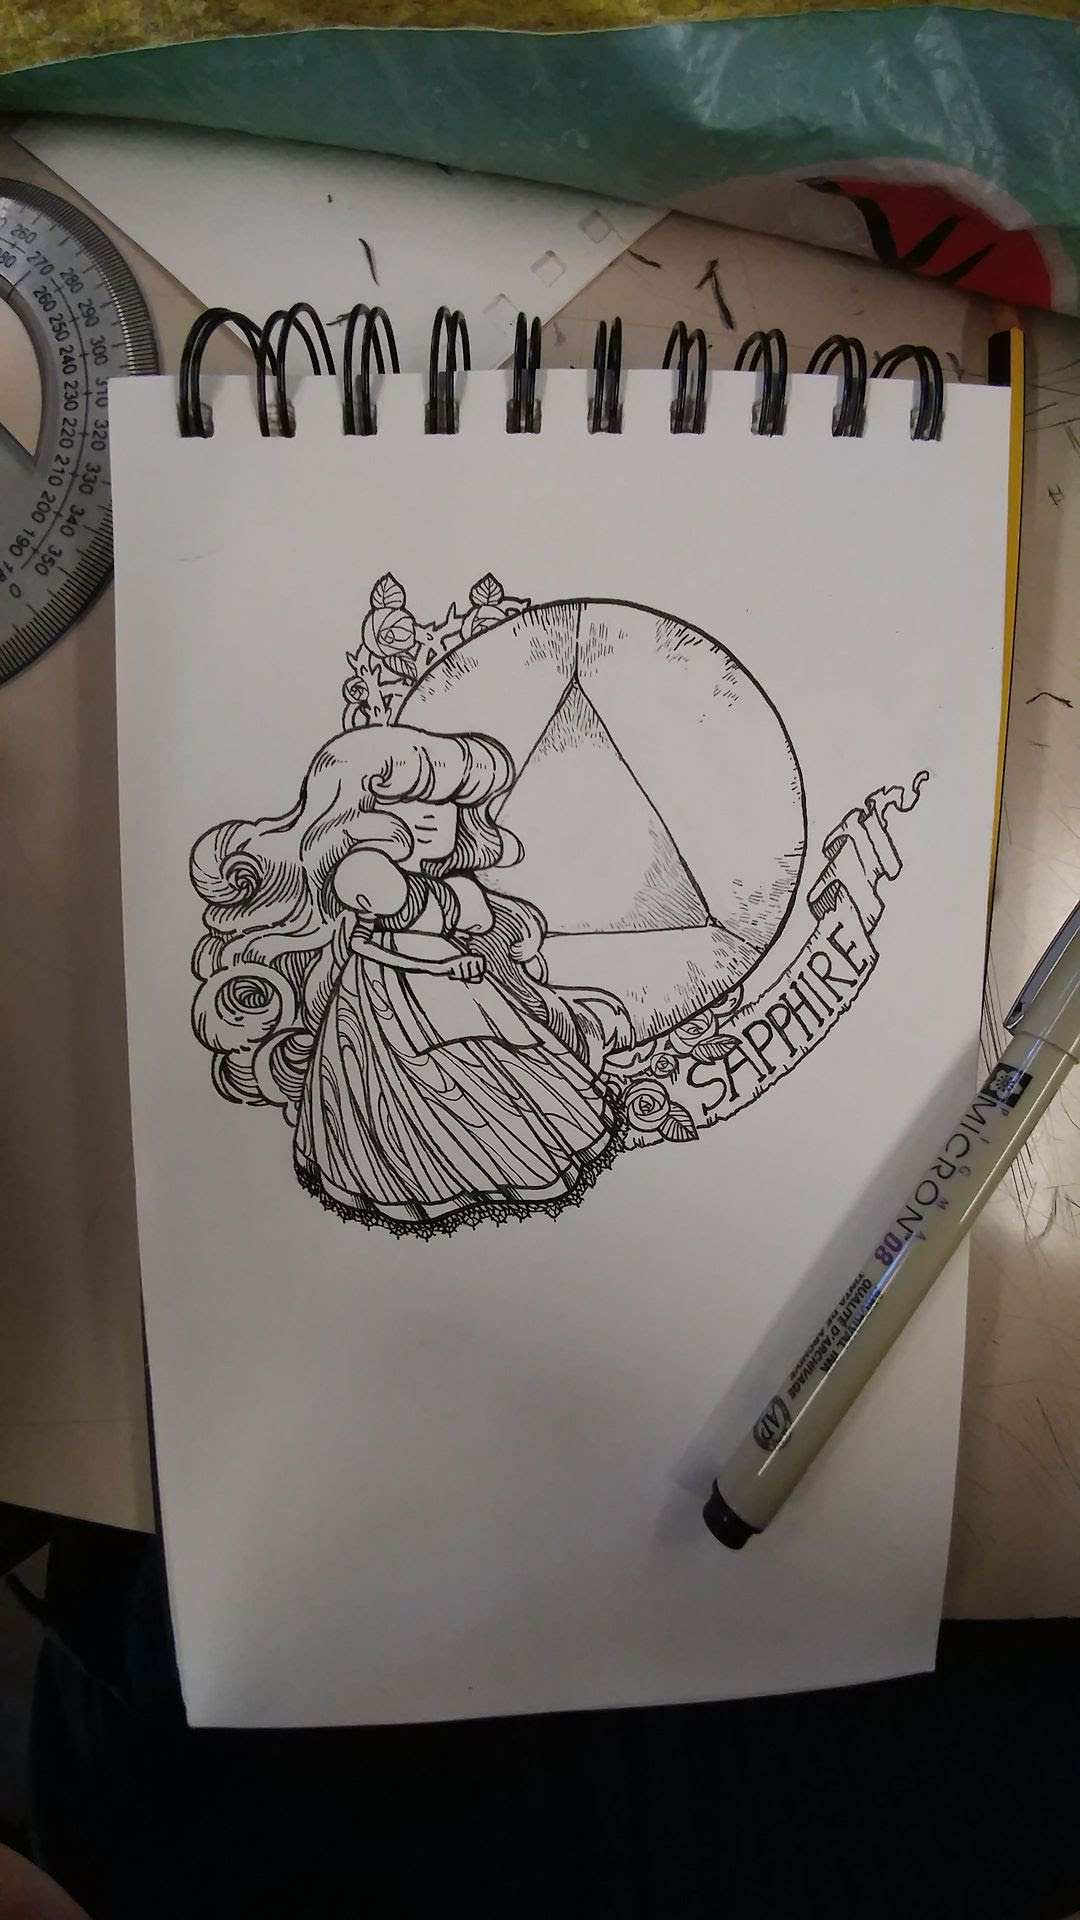 Just some gems sketches